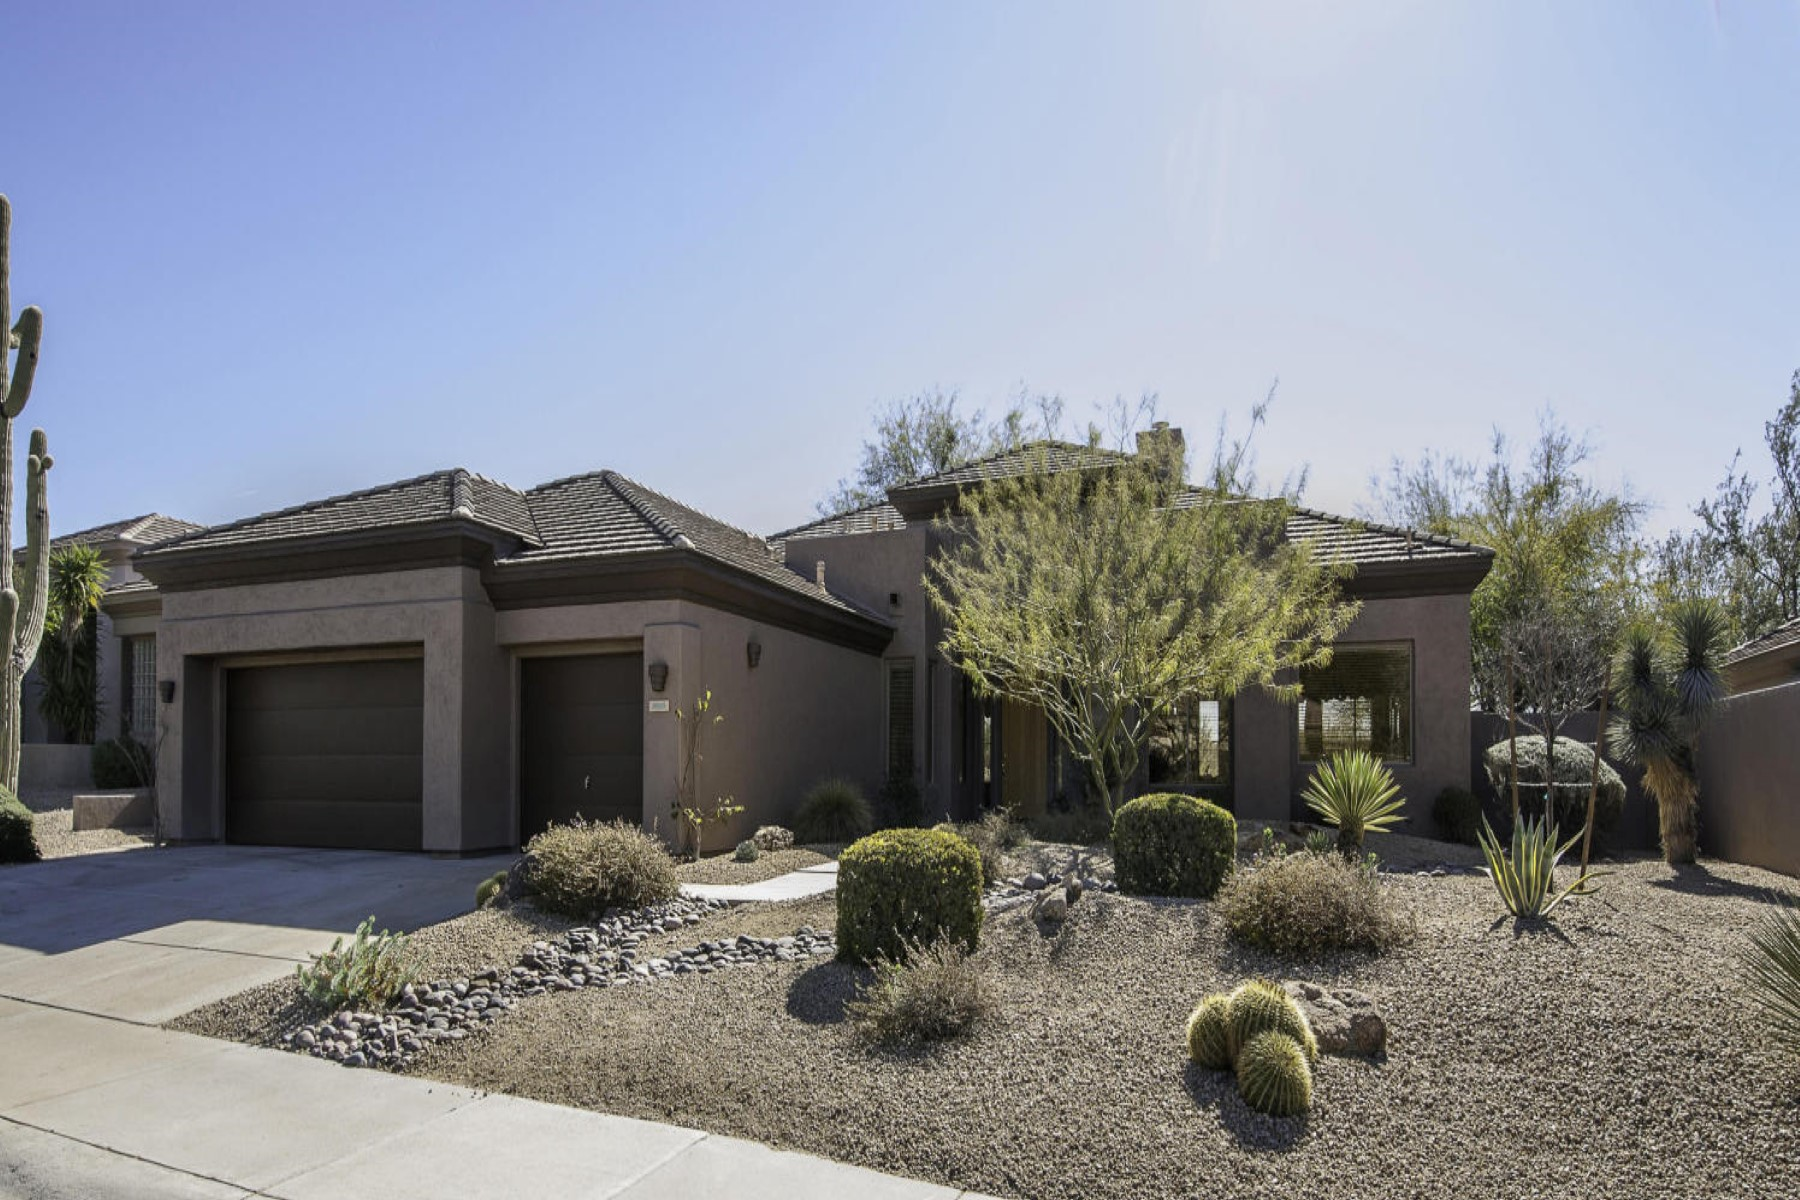 Single Family Home for Sale at Immaculate two bedroom home sits on a beautiful lot 6659 E Amber Sun Dr Scottsdale, Arizona, 85266 United States